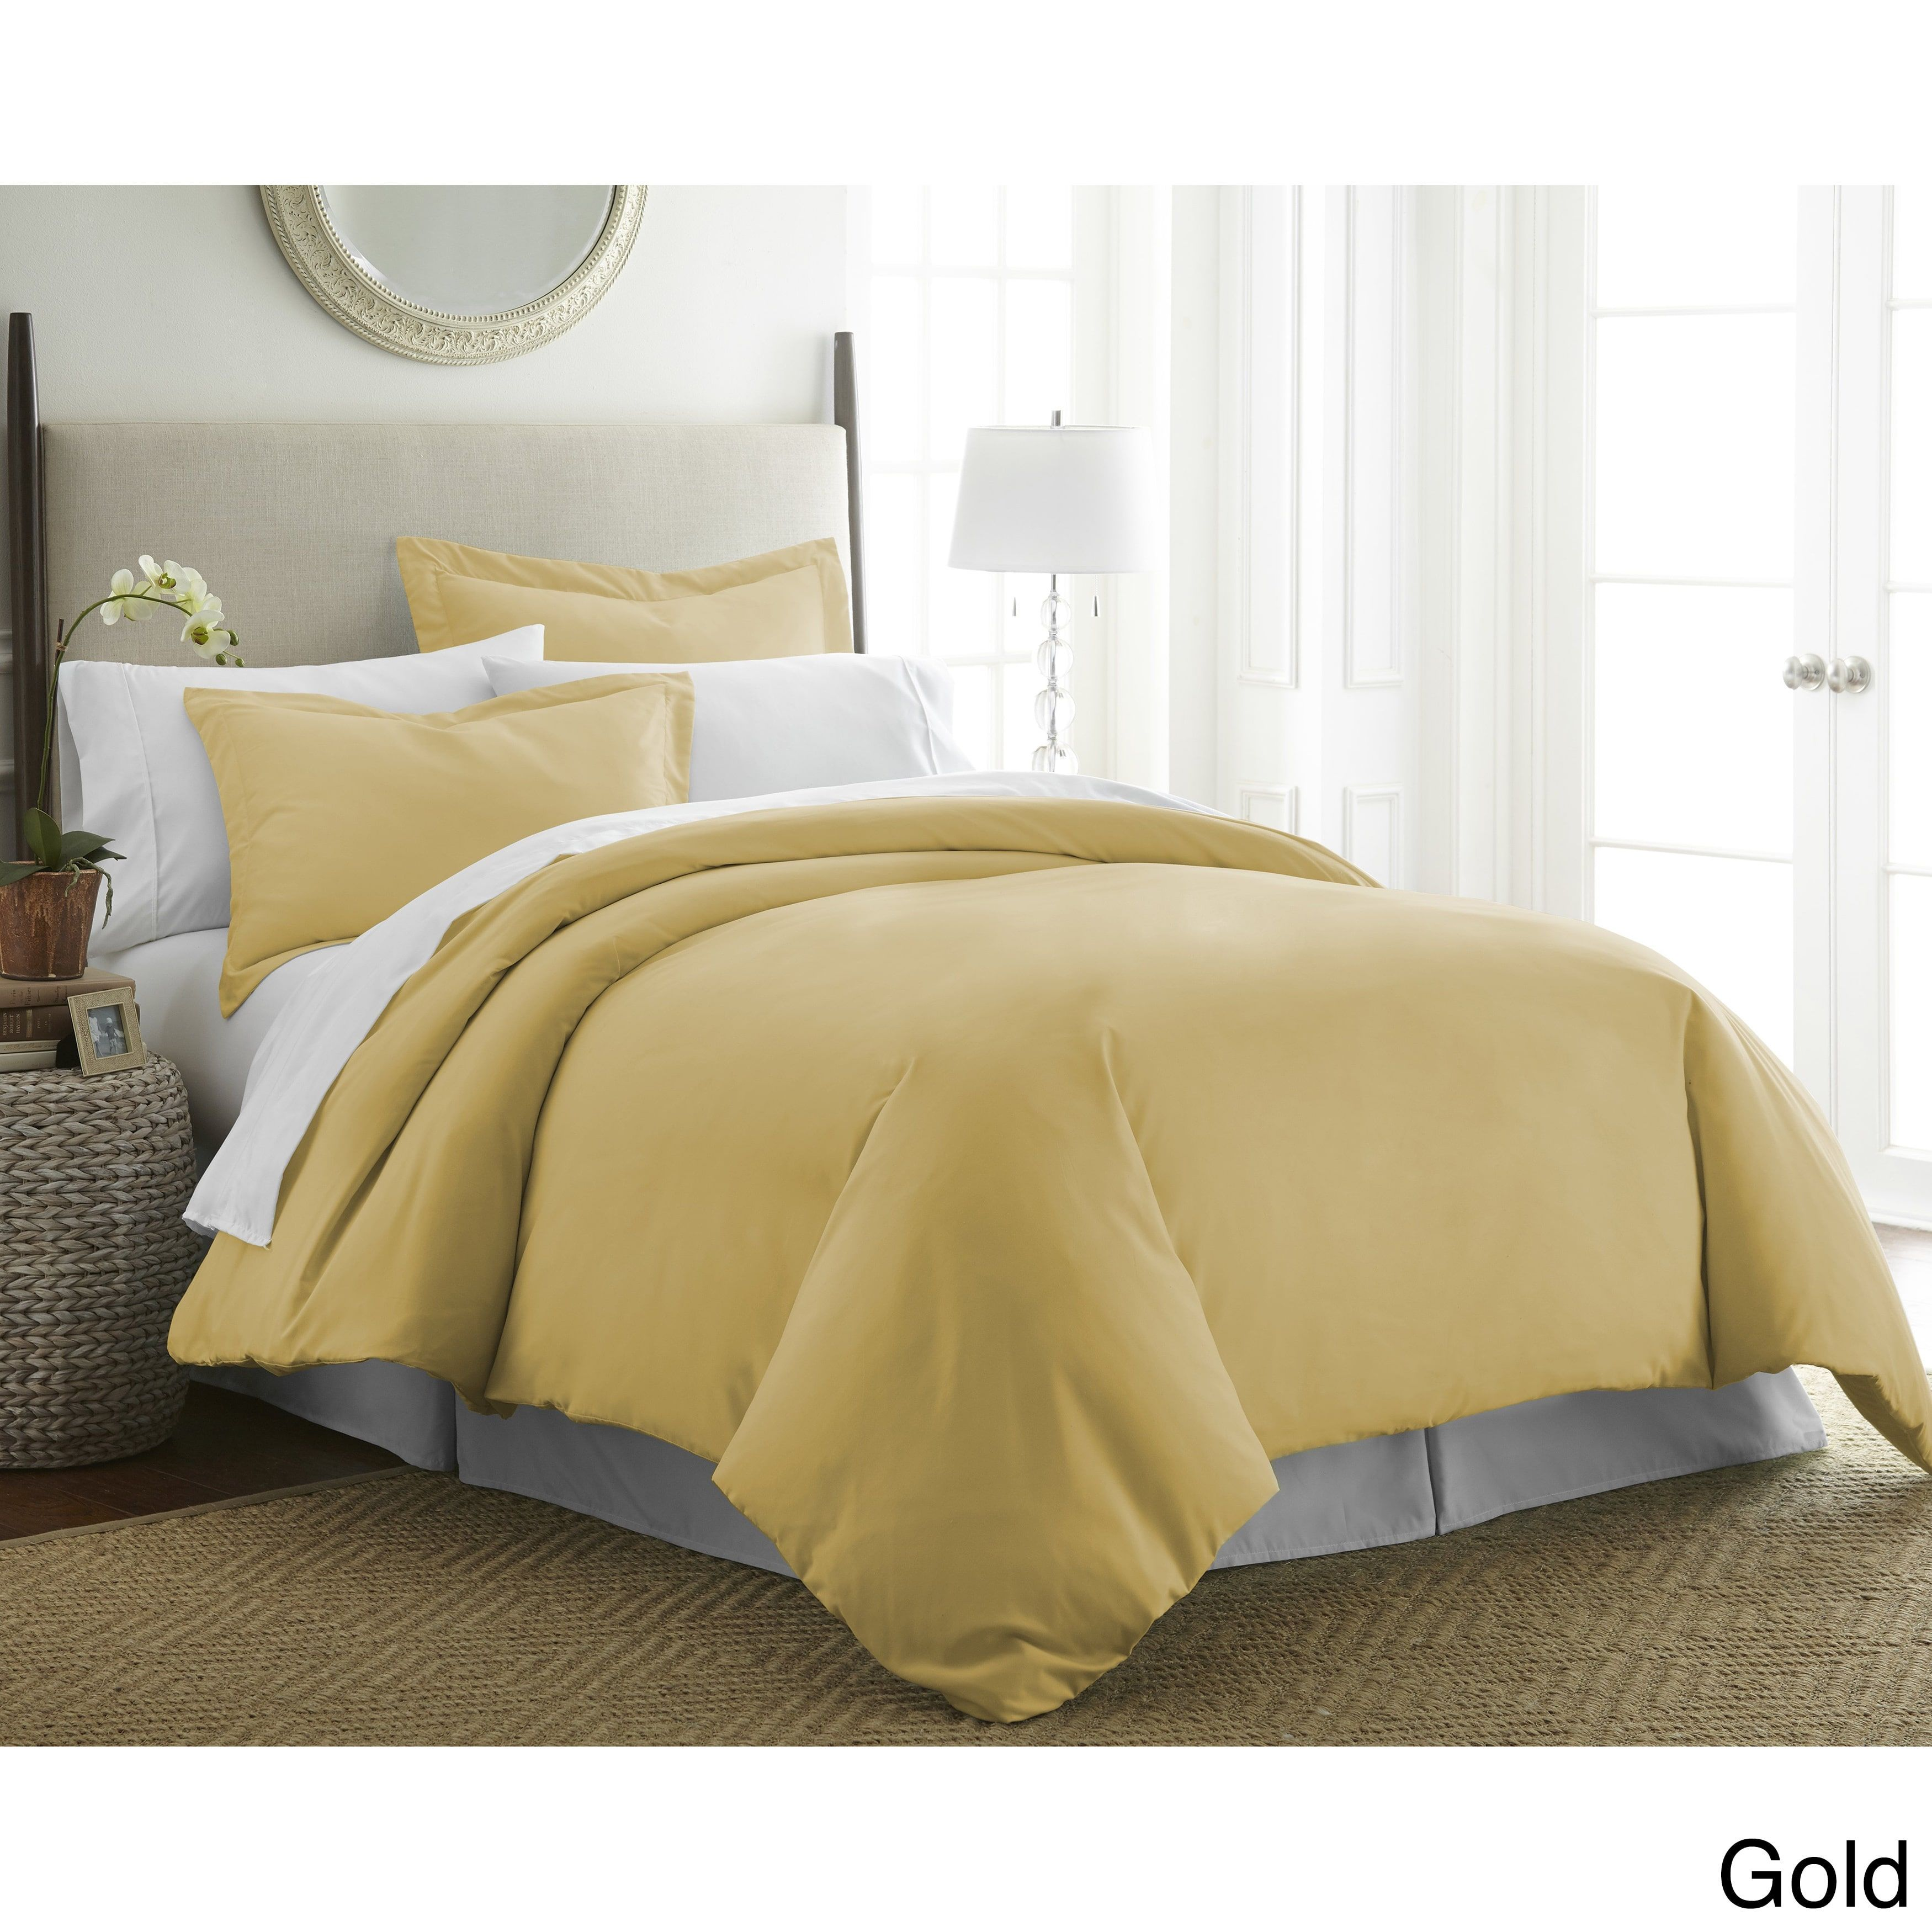 covers fashion comforter sets rwnlvm home duvet bedding white cover lattitude htm navy american comforters red king sports california